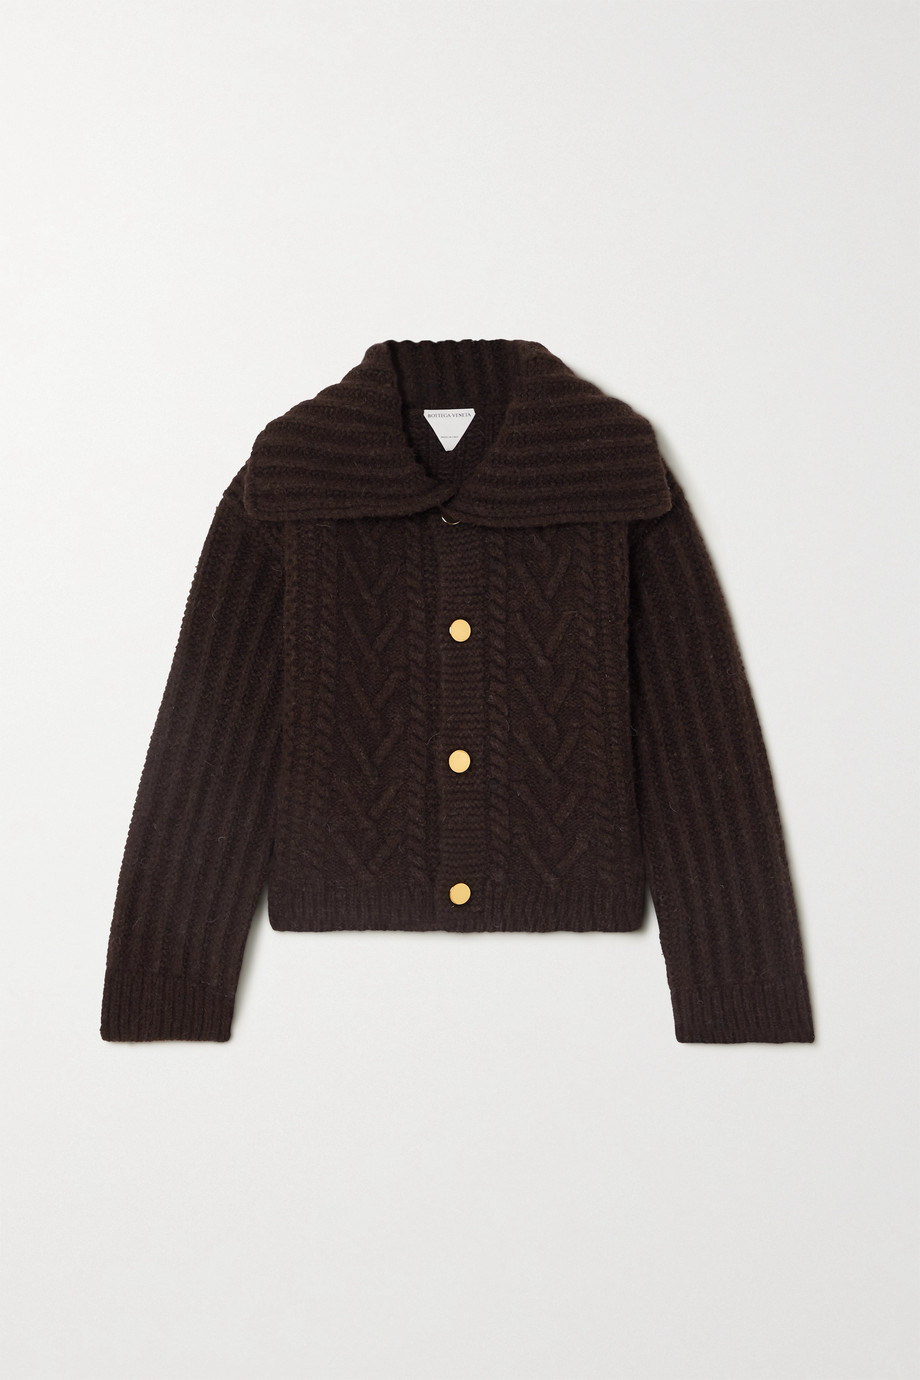 Bottega Veneta Cable-knit wool jacket